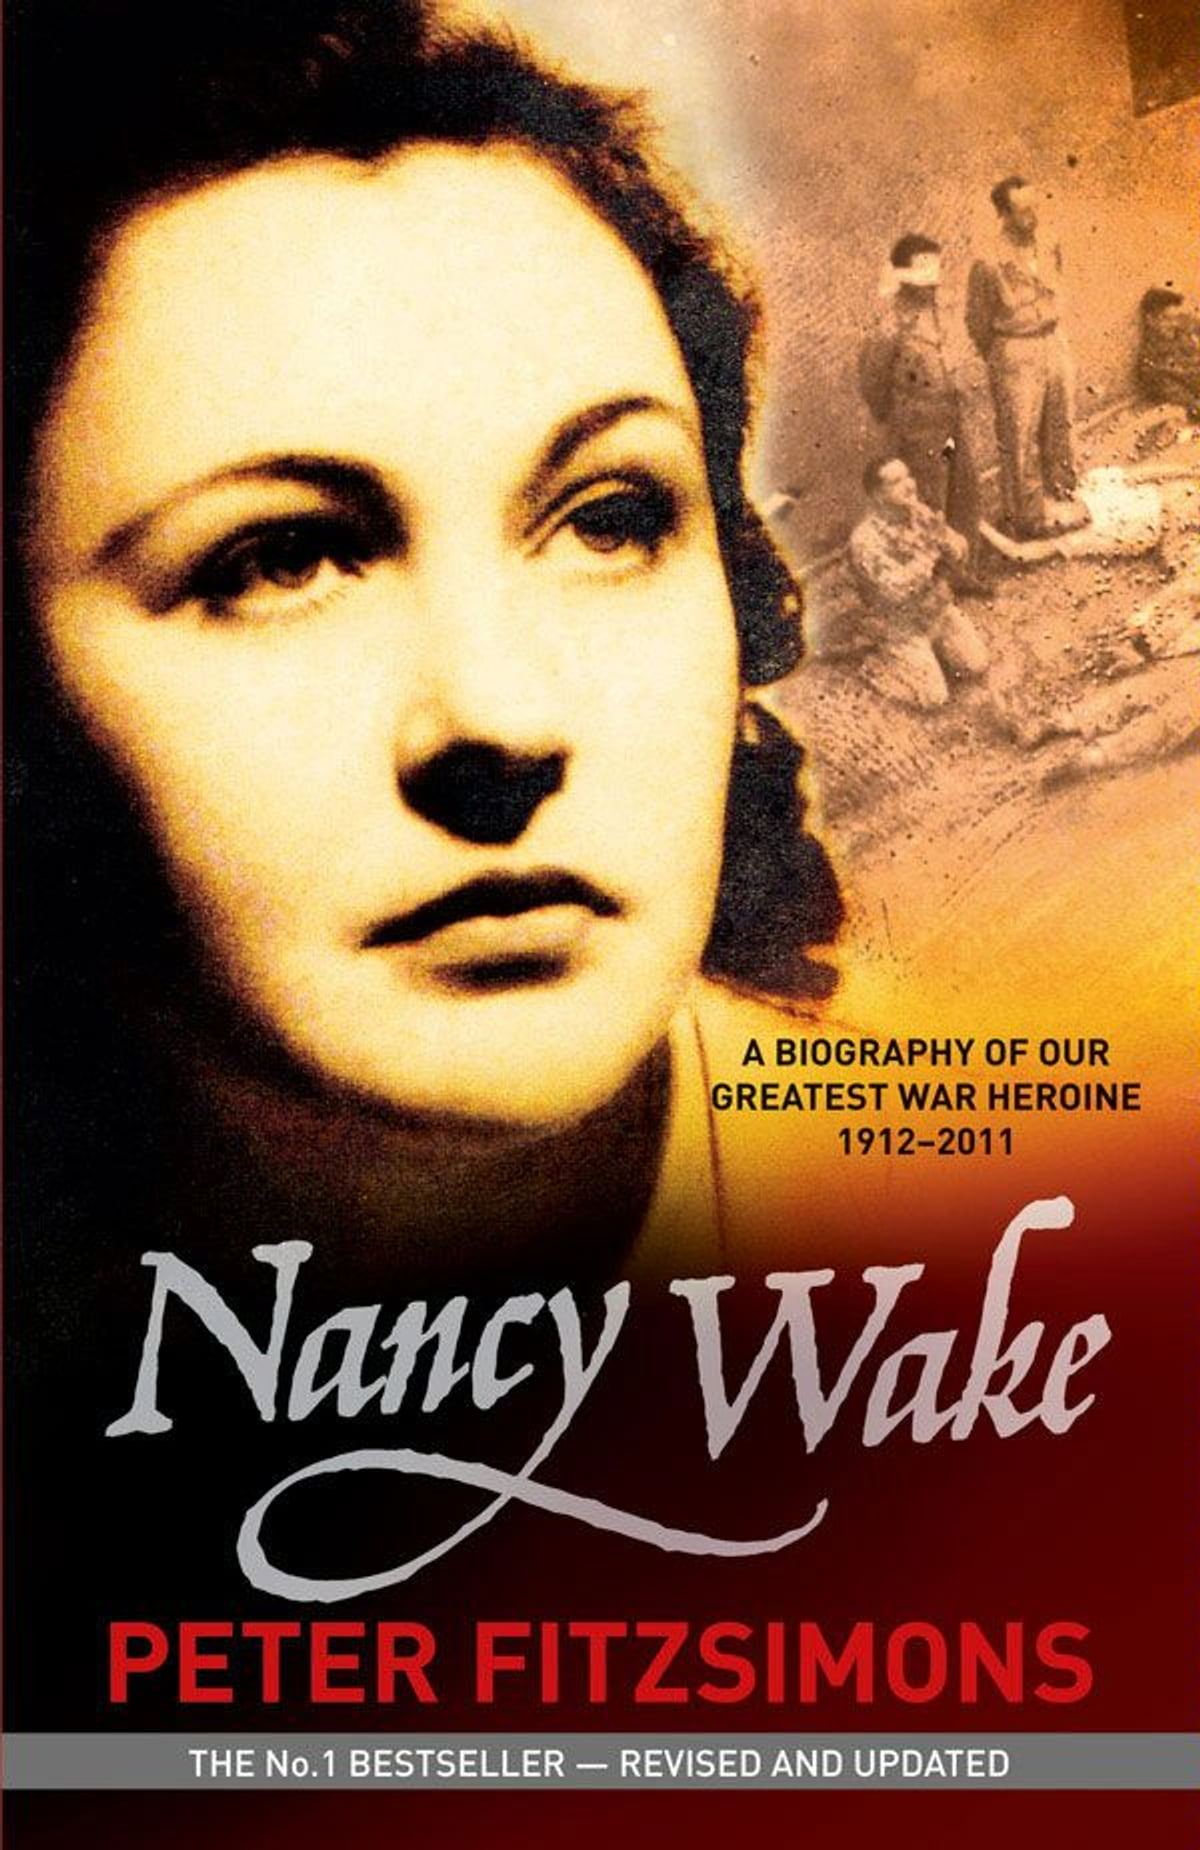 the life of nancy wake and her influence during the second world war Served as a british agent during the later part of world war in the second world war gallery at nancy wake: a biography of our greatest war.